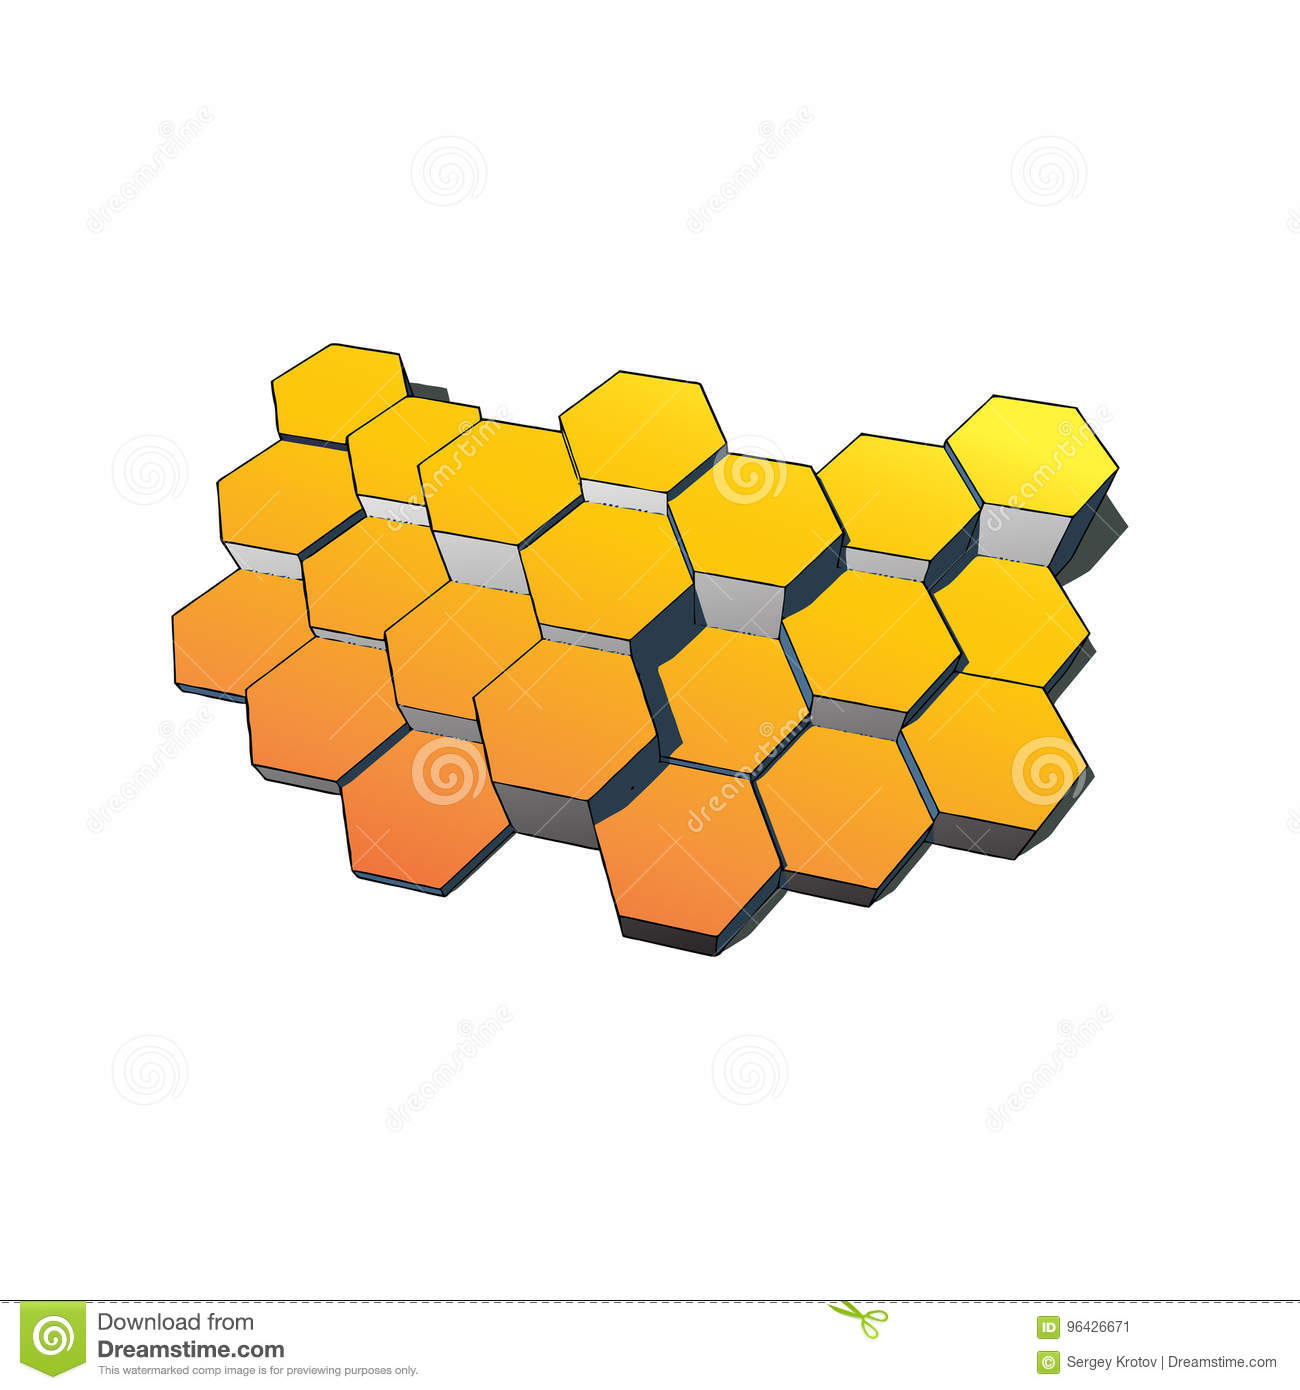 Hexagons technology and communication background. Vector illustration eps10